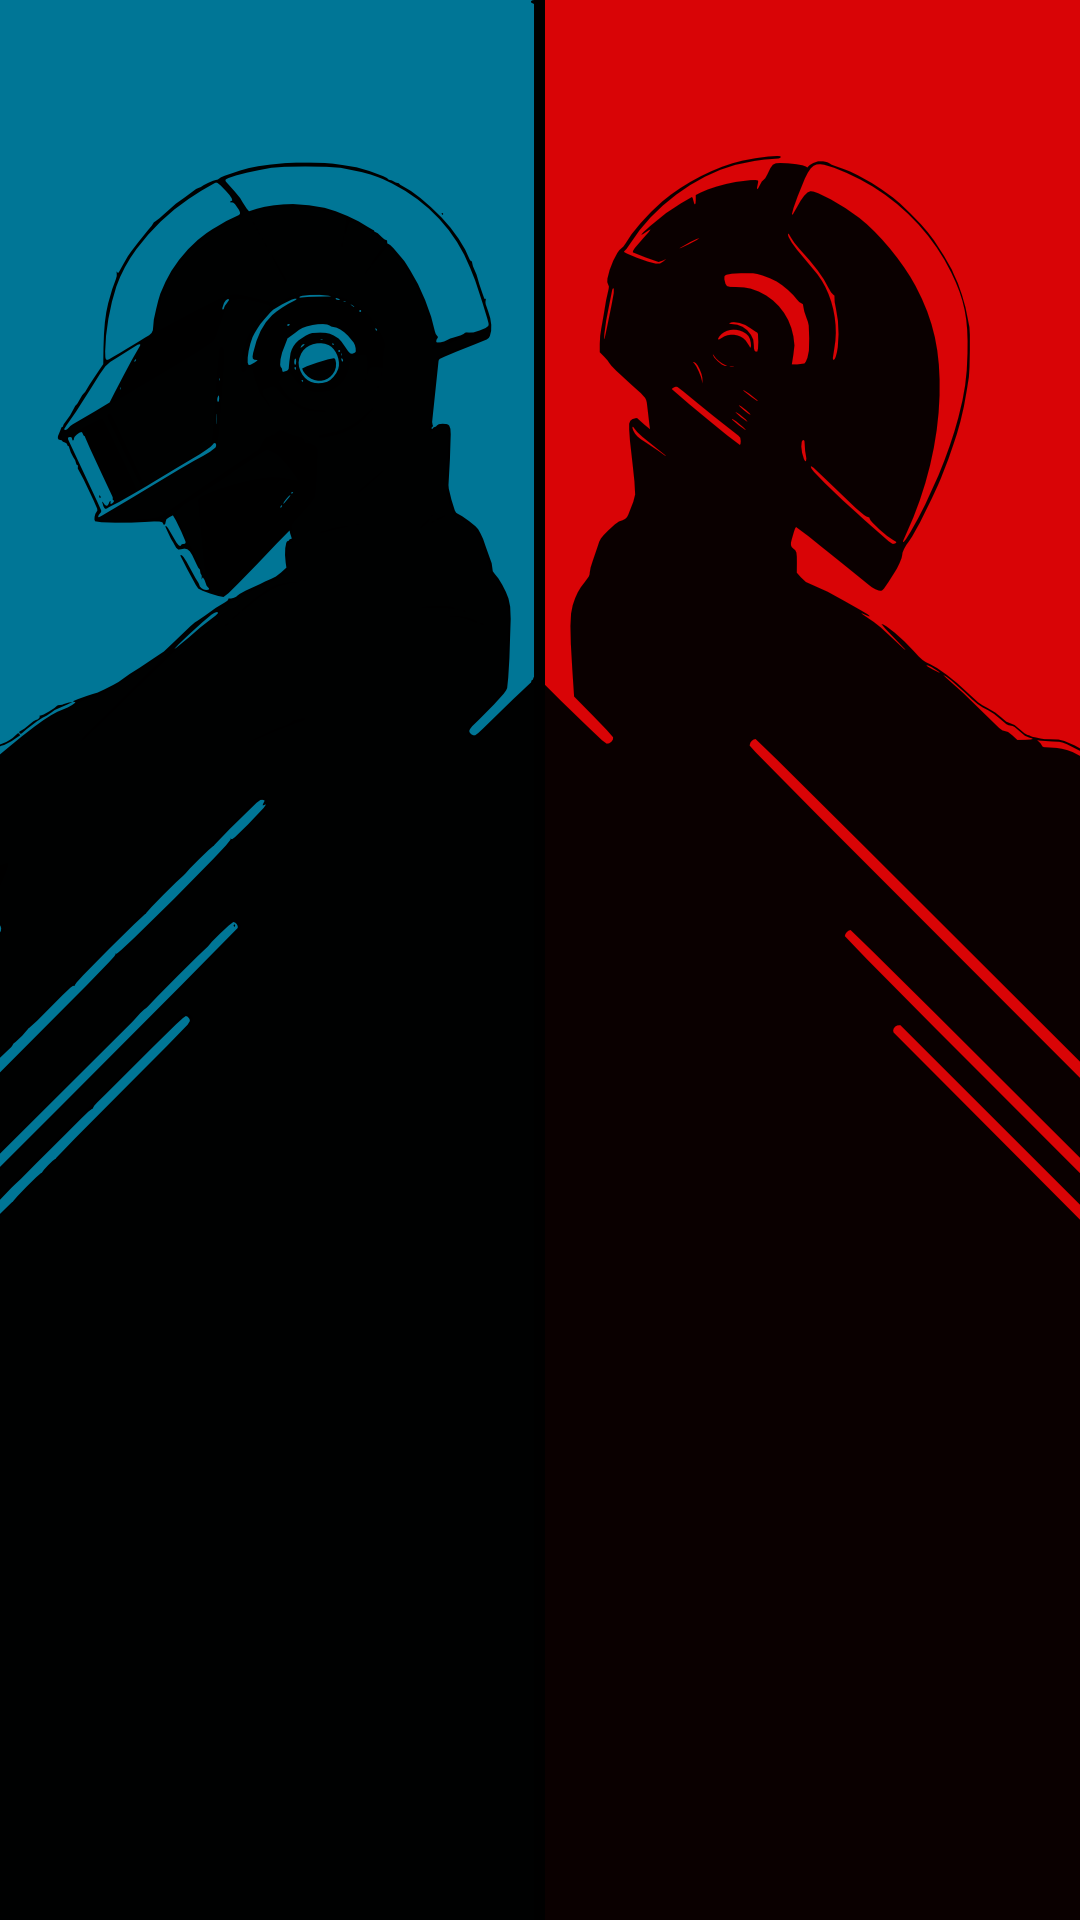 Free Download Daft Punk Iphone Wallpaper Hd 1080x1920 For